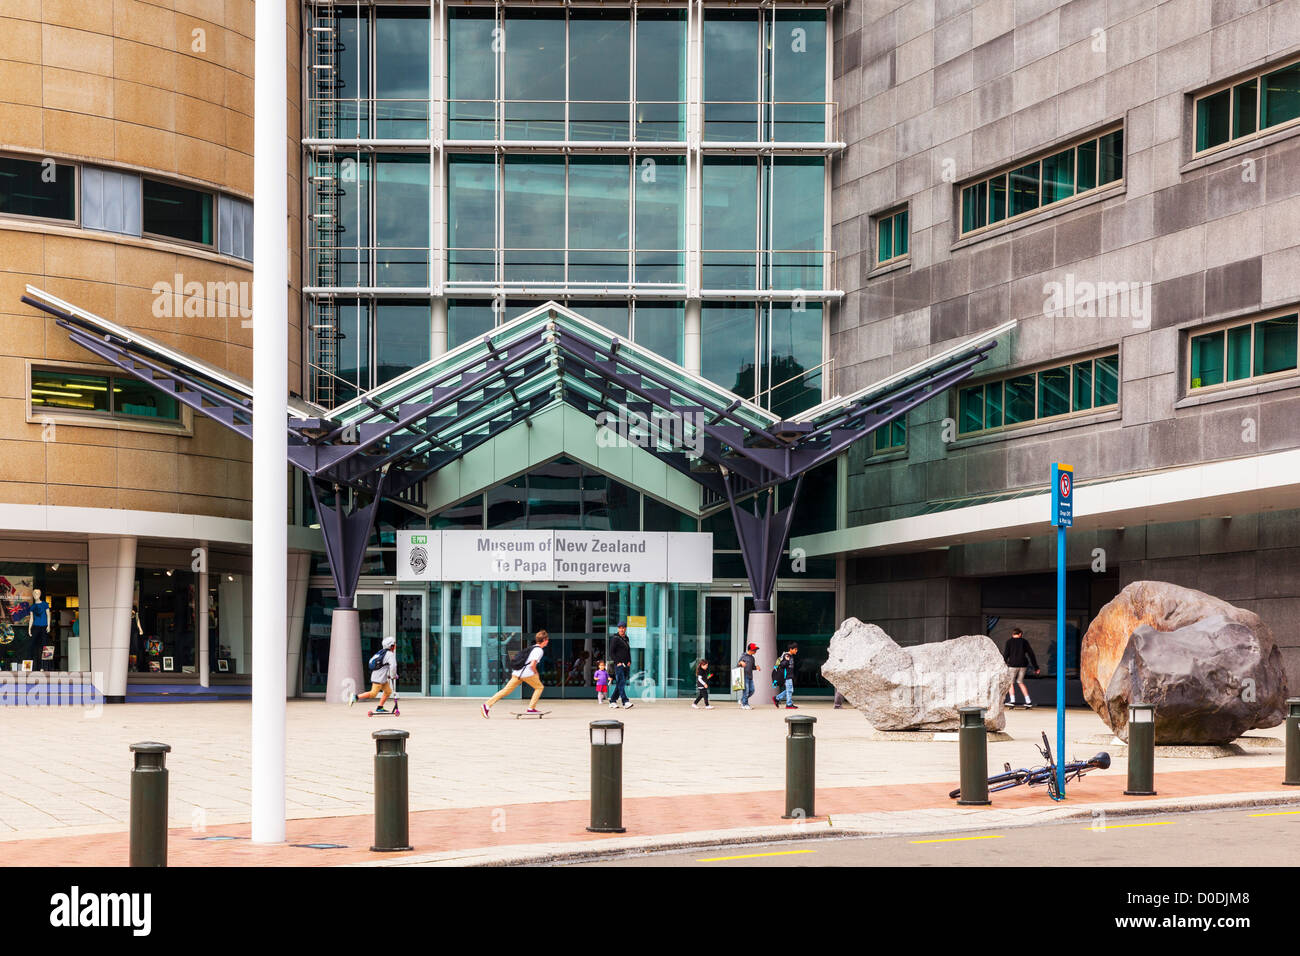 Te Papa Tongarewa Museum of New Zealand, Wellington. Stockbild